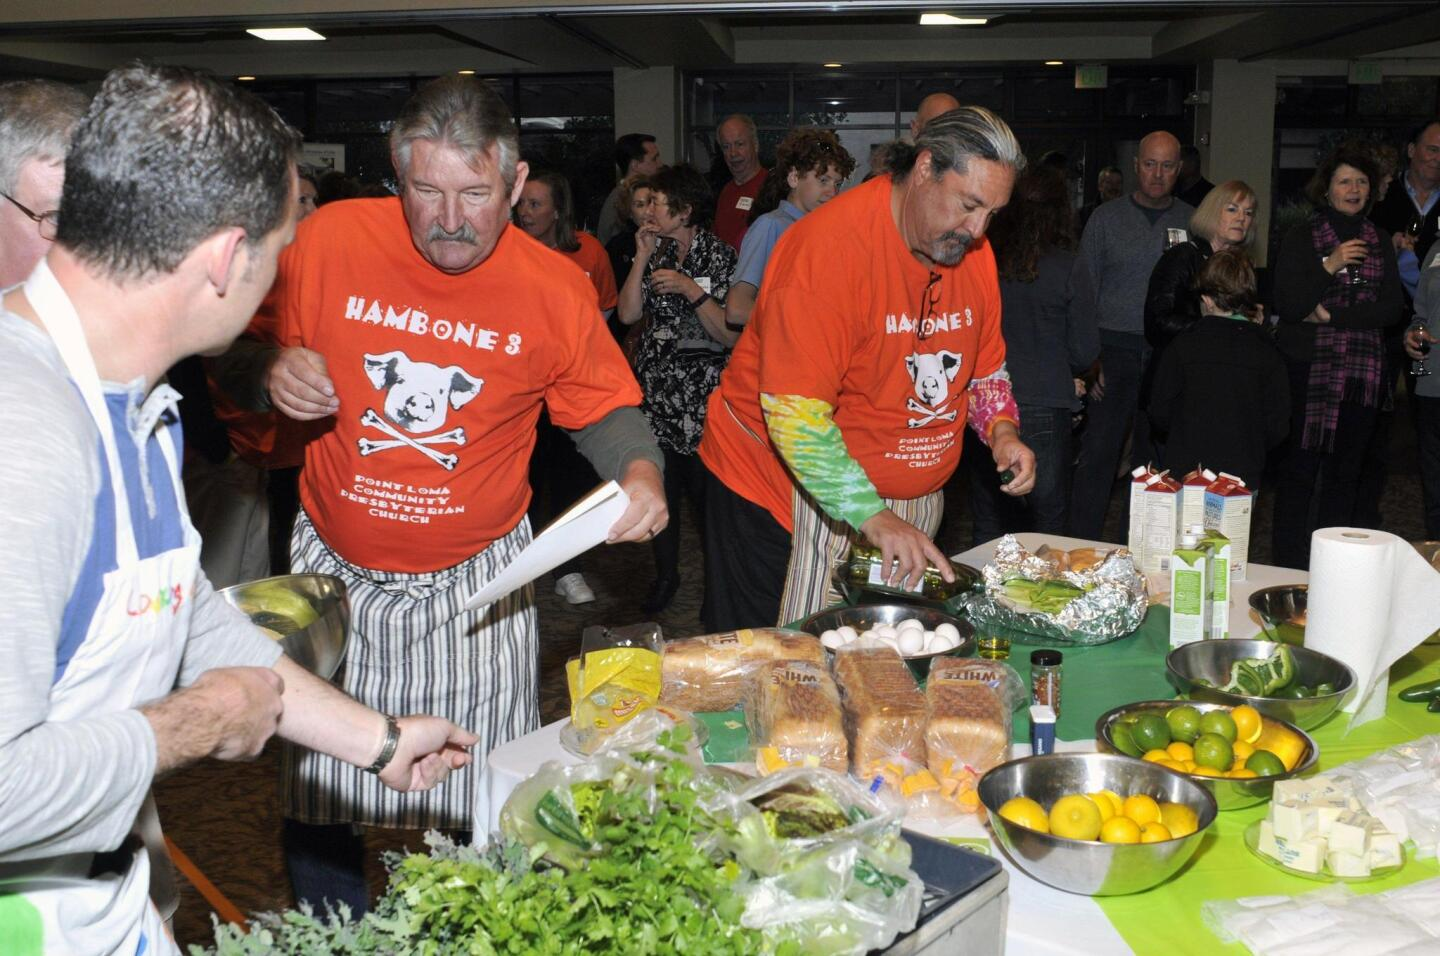 Teams chose ingredients from items commonly available at food banks